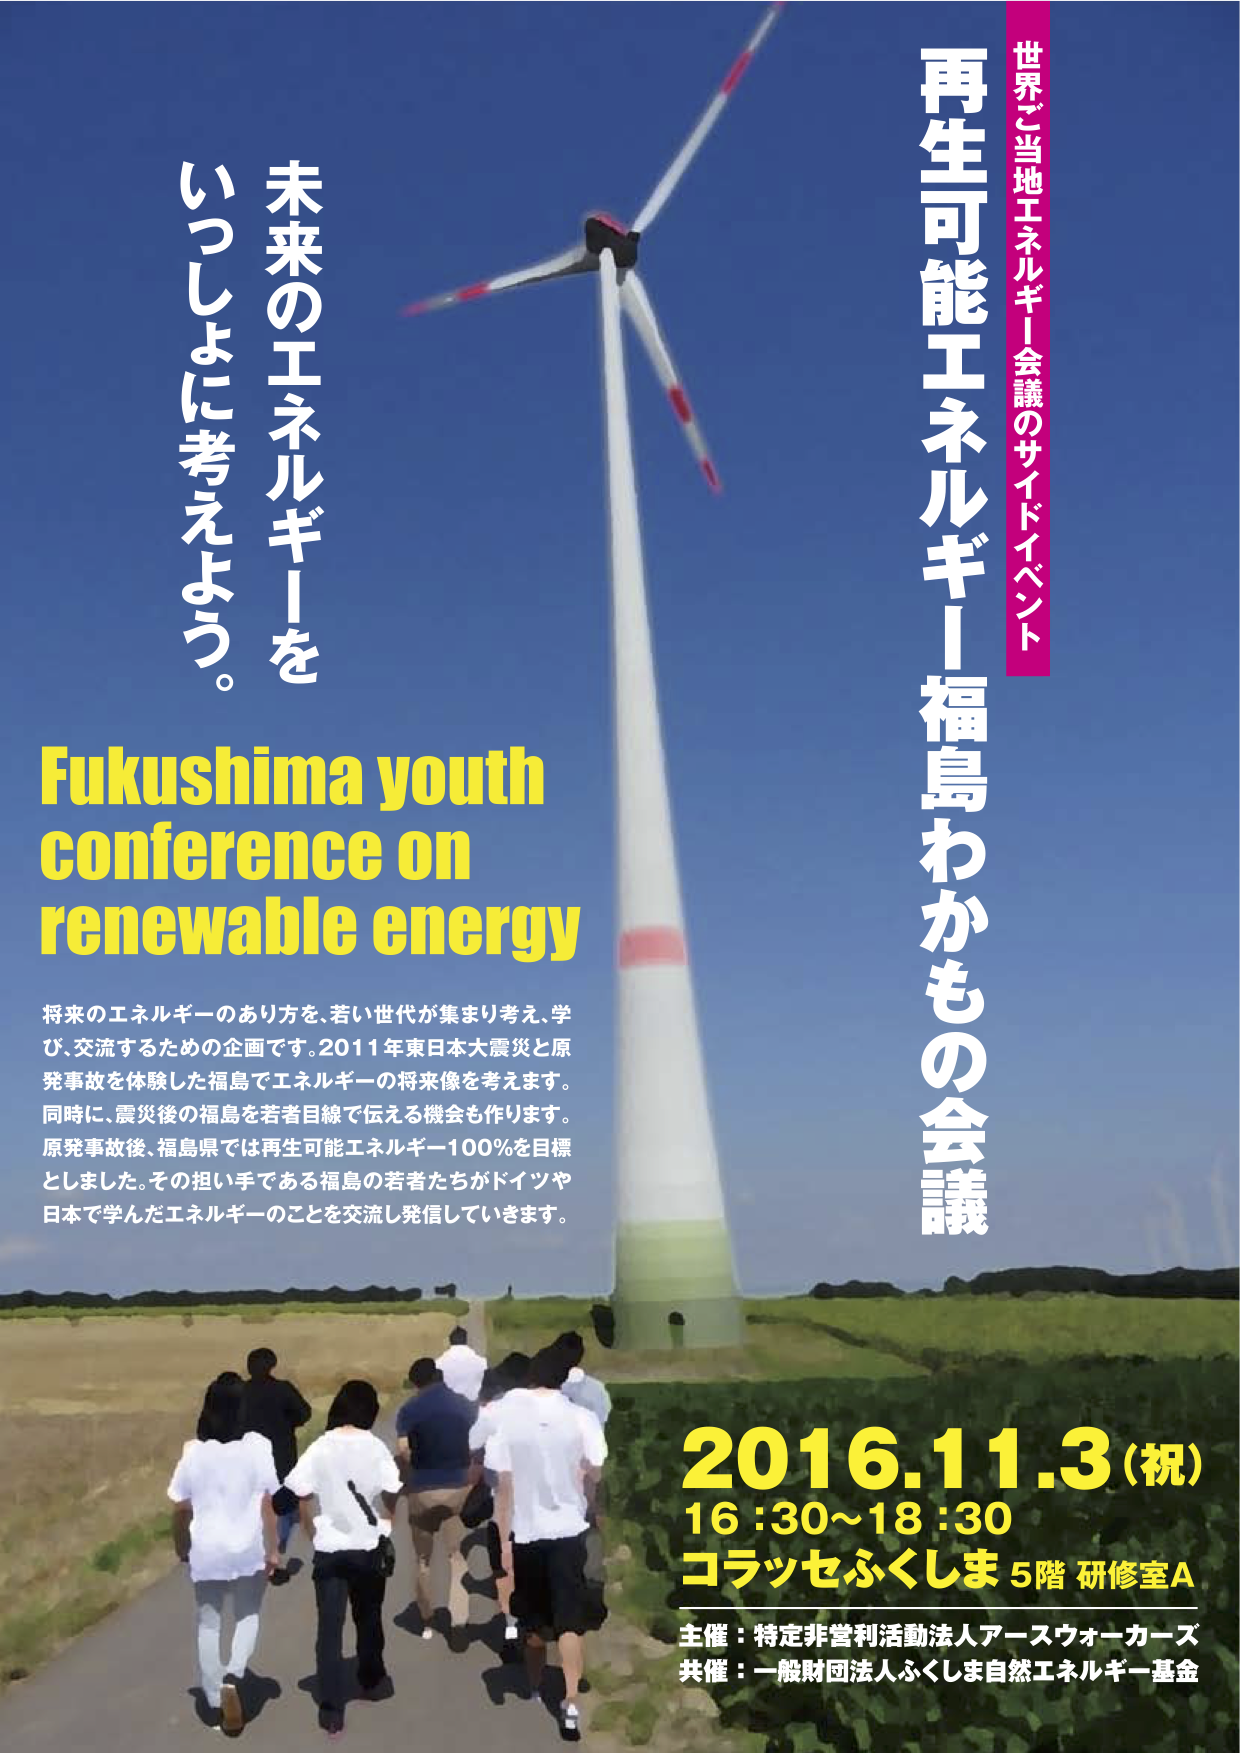 https://www.wcpc2016.jp/wp-content/uploads/2016/10/SideEvent.png